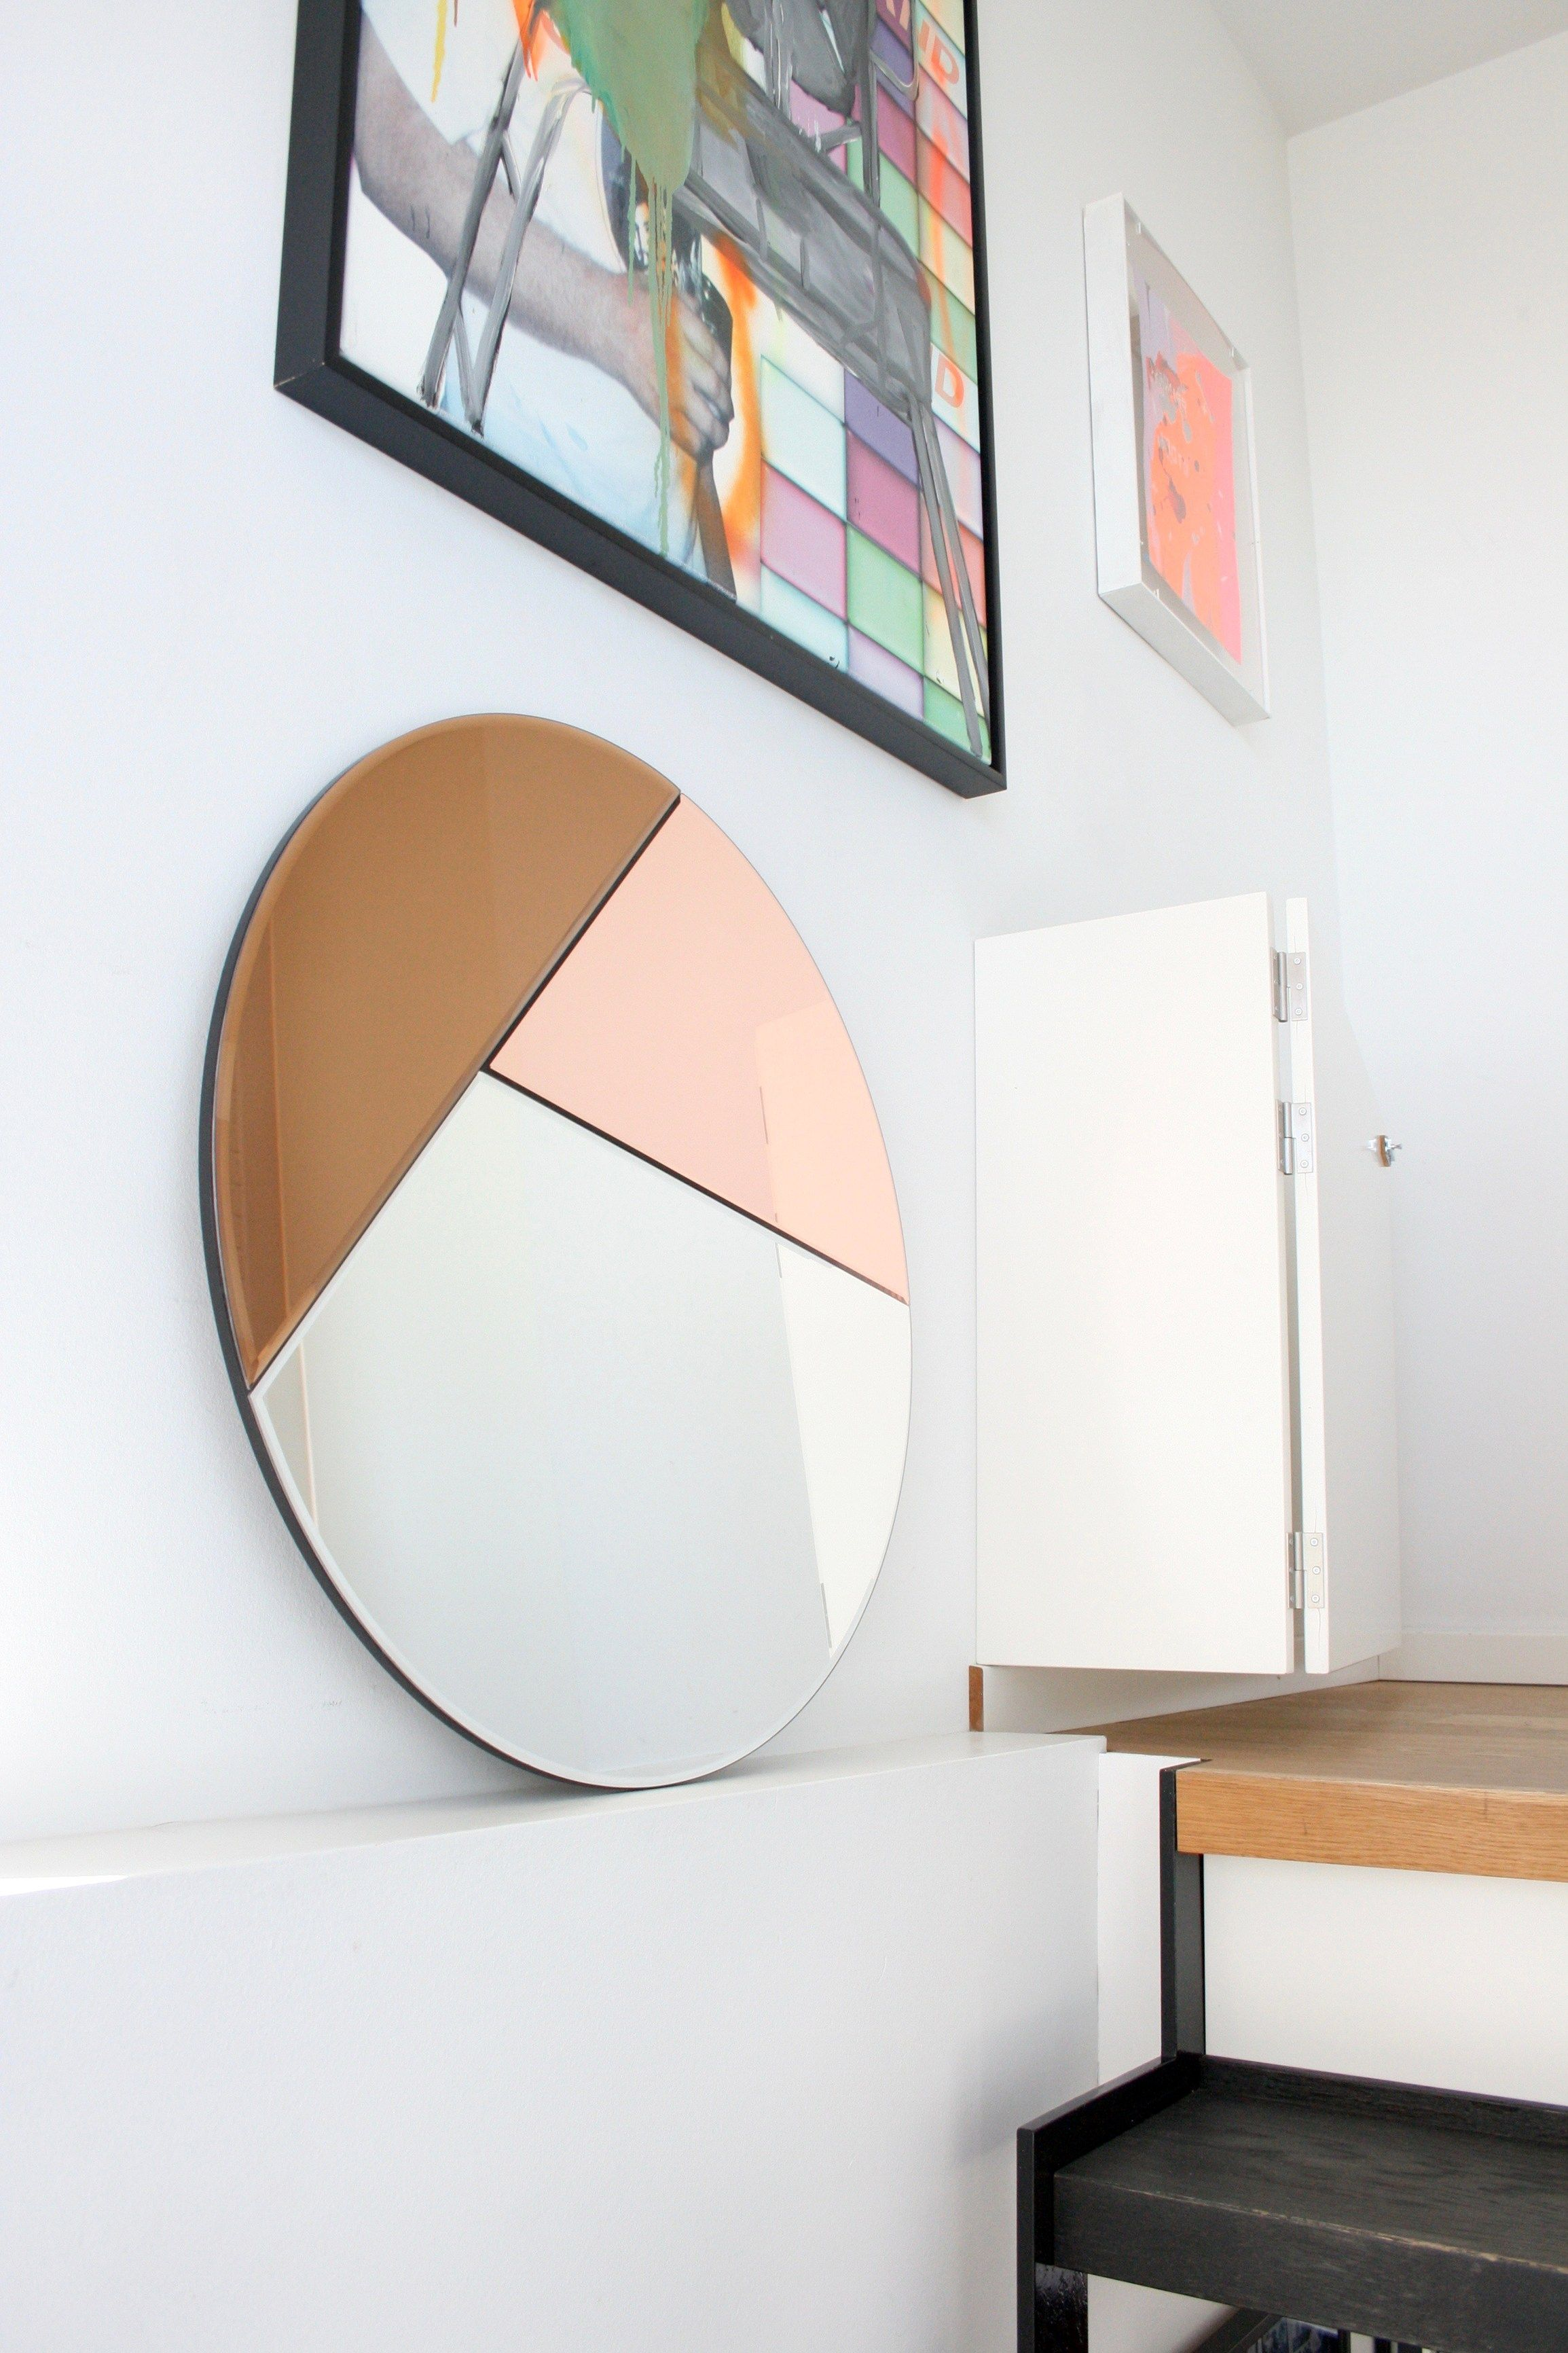 Nouveau 70 | Round mirrors, Mirror and Murals - Round wall-mounted mirror NOUVEAU 70 by Reflections Copenhagen